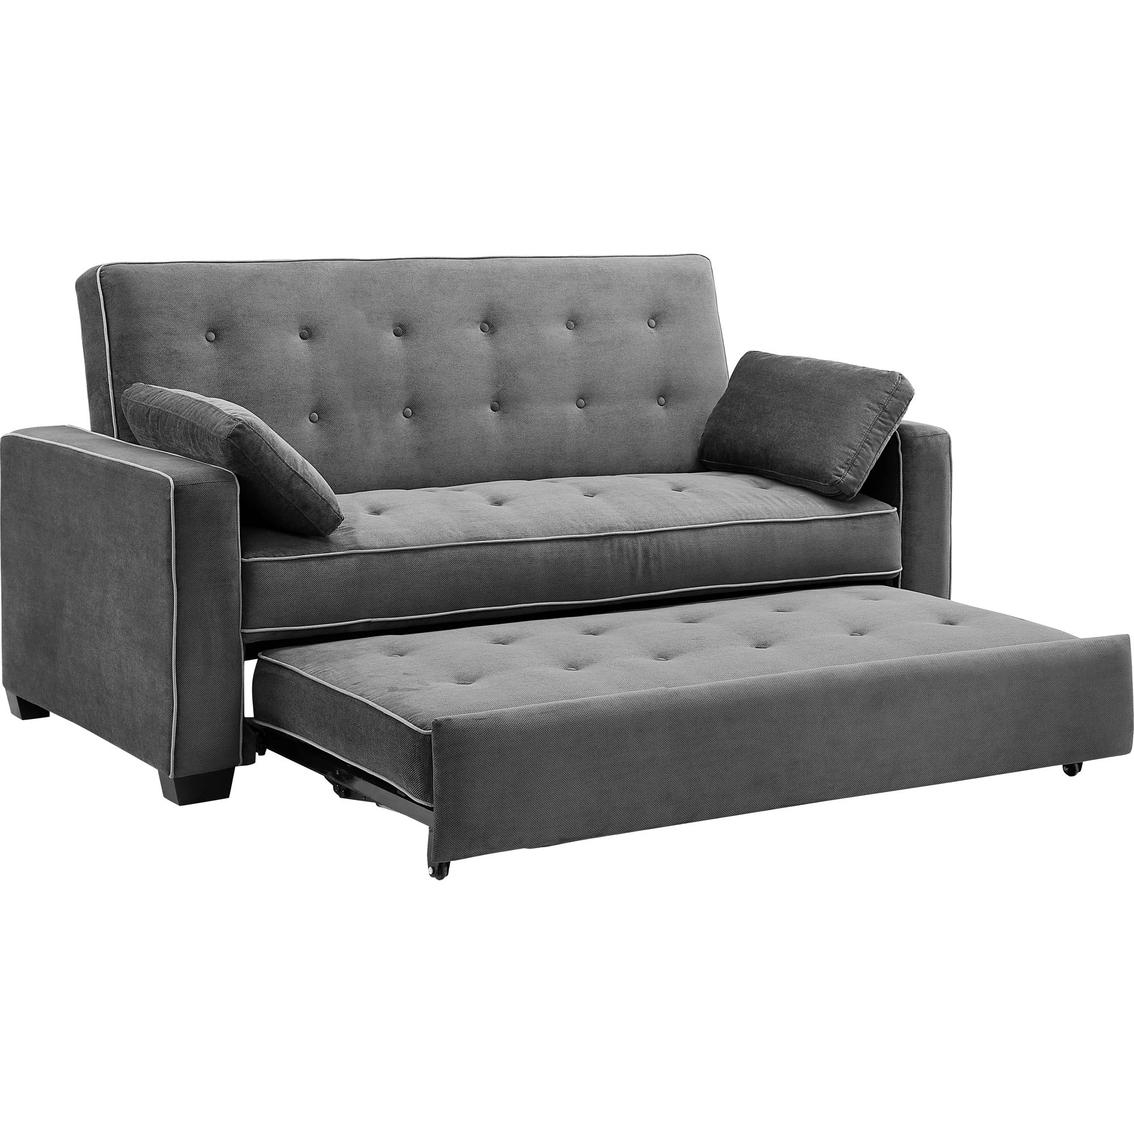 Queen Size Sleeper Sofa – Interior Design in Queen Convertible Sofas